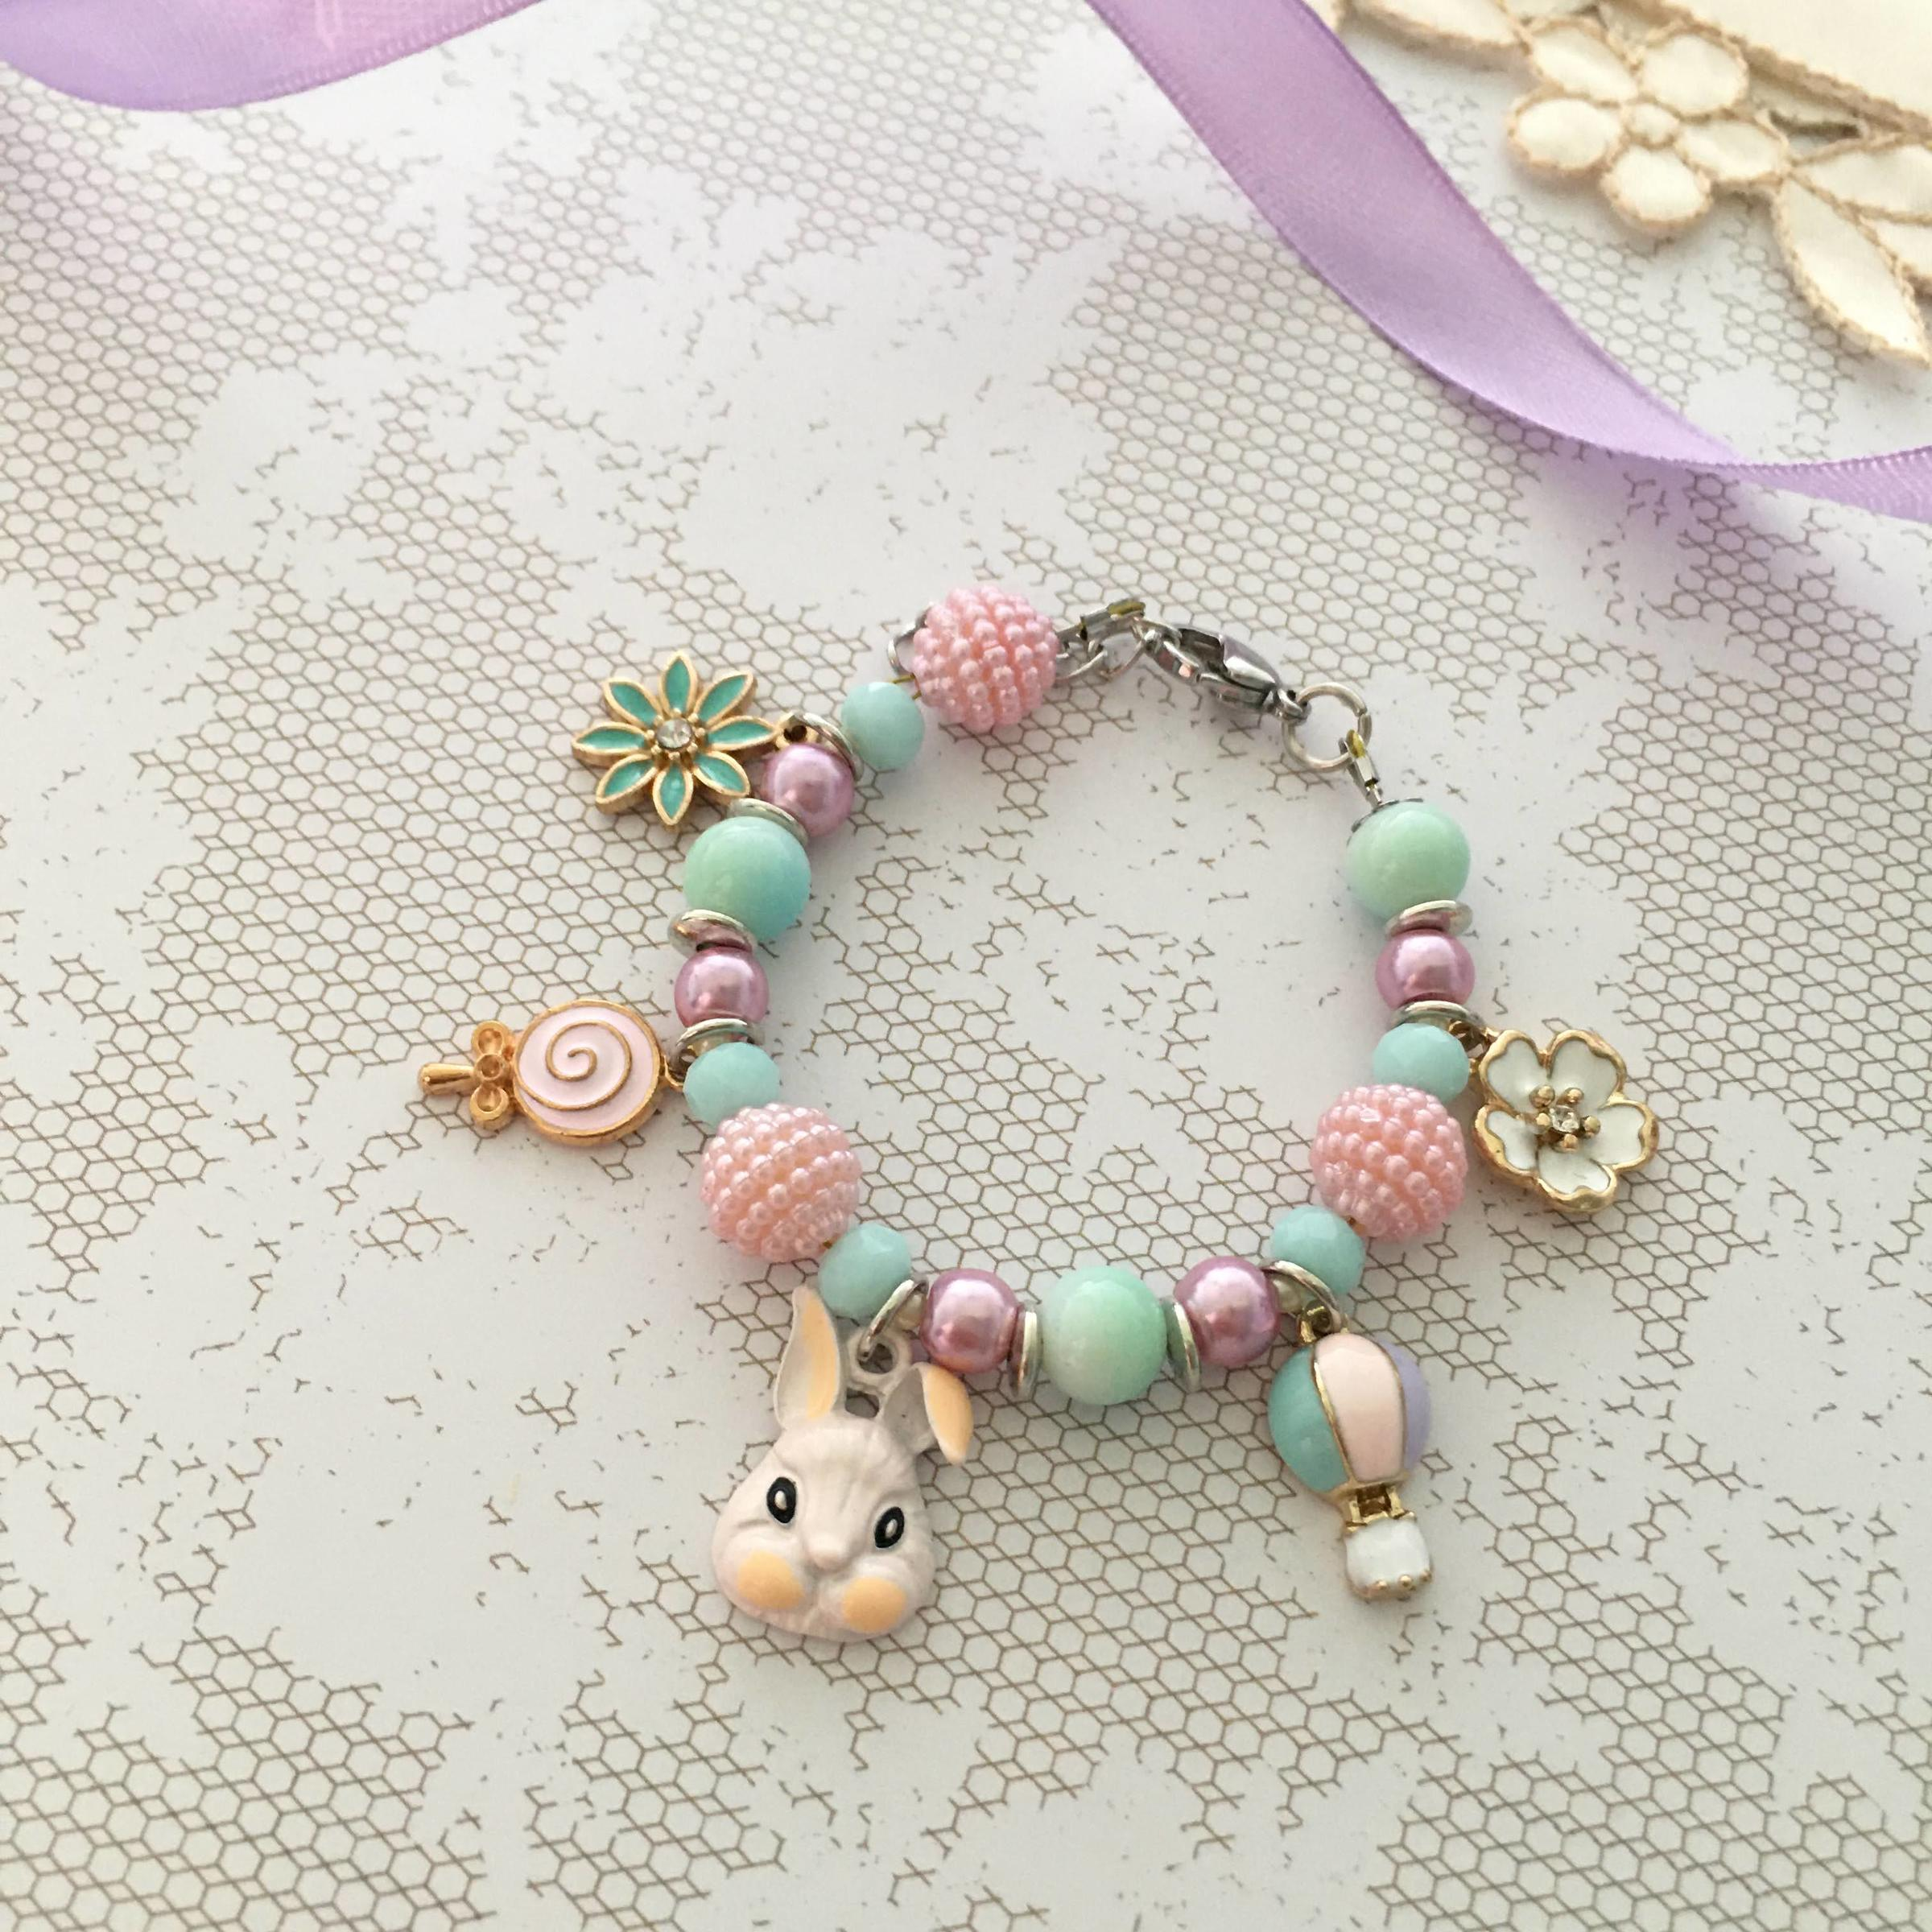 Cute bunny and lollipop charm bracelet.JPG